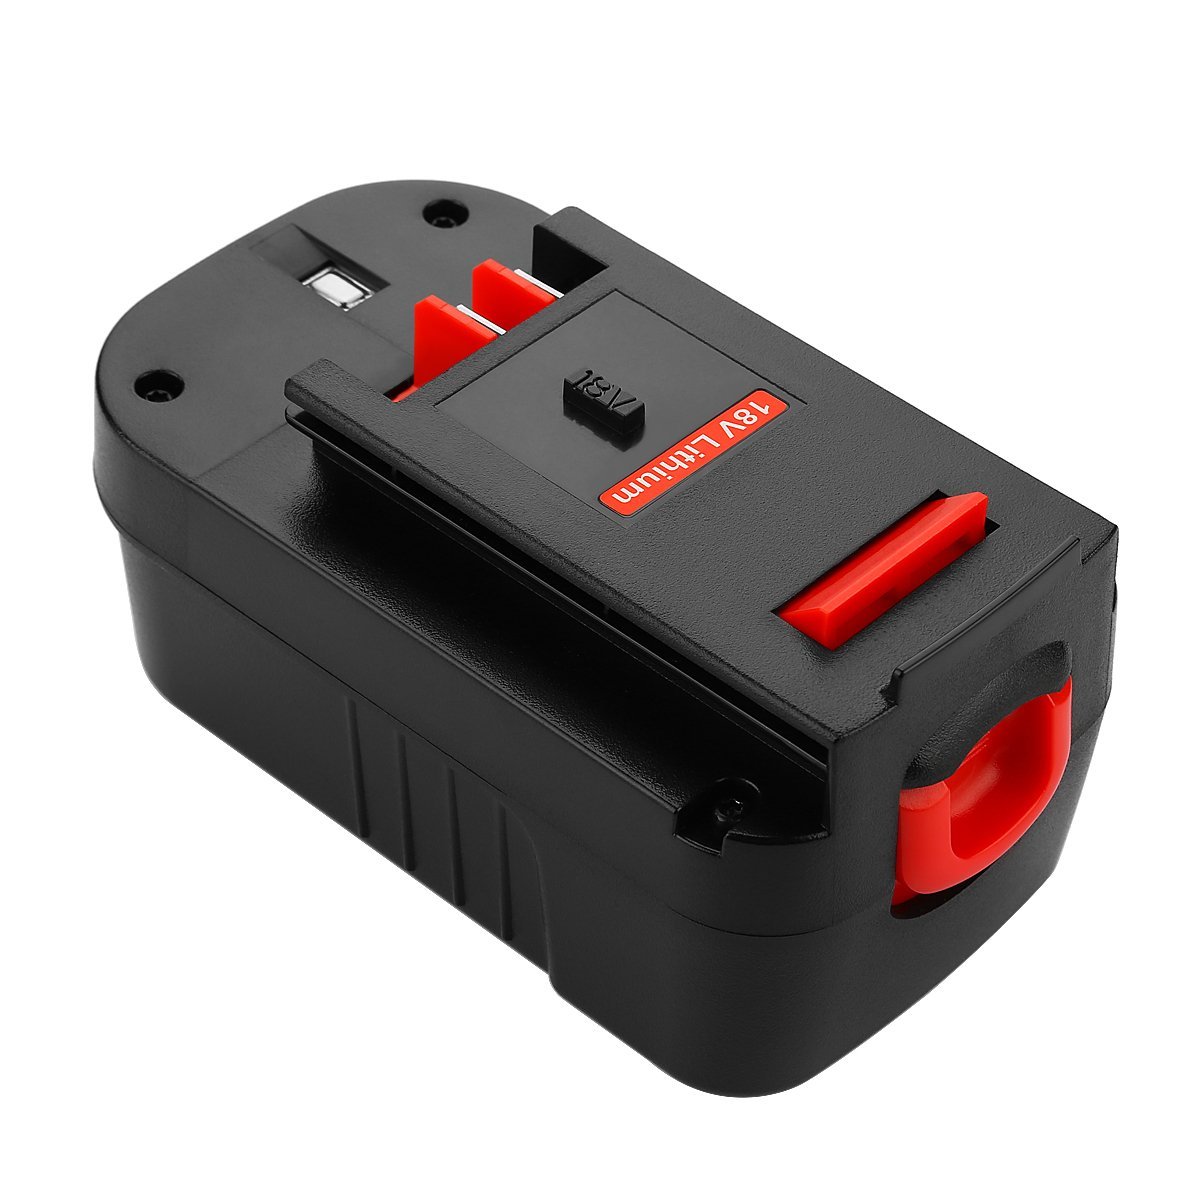 Energup Upgraded 5000mAh Lithium Black & Decker 18V Replacement Battery for HPB18 HPB18-OPE 244760-00 A1718 FS18FL FSB18 Firestorm Black and Decker 18 Volt Battery by Energup (Image #6)